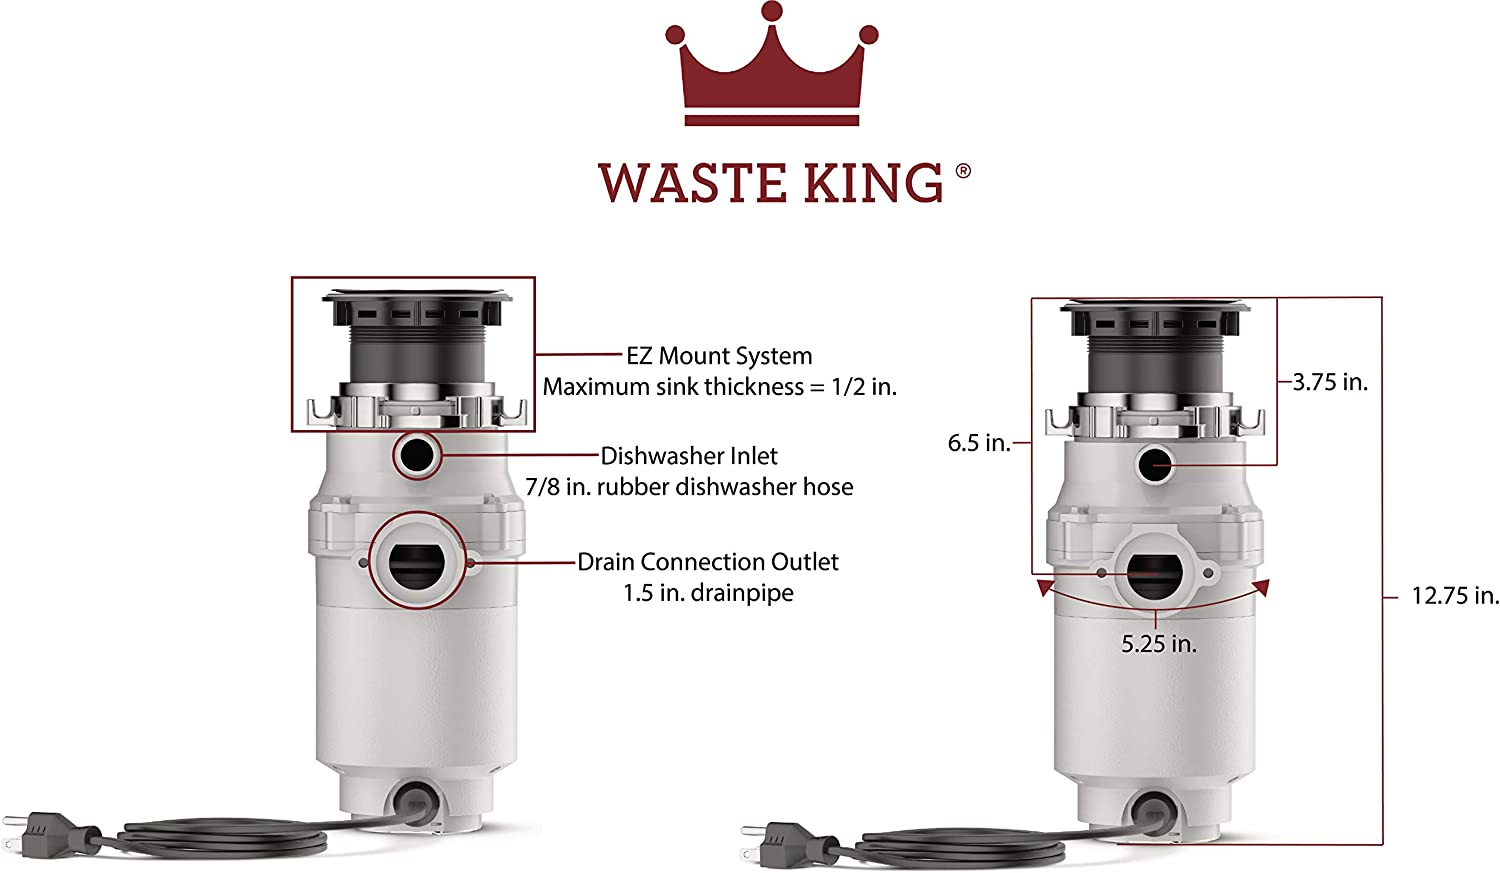 Waste King L-111 Garbage Disposal with Power Cord, 1/3 HP - Food Waste Disposers -